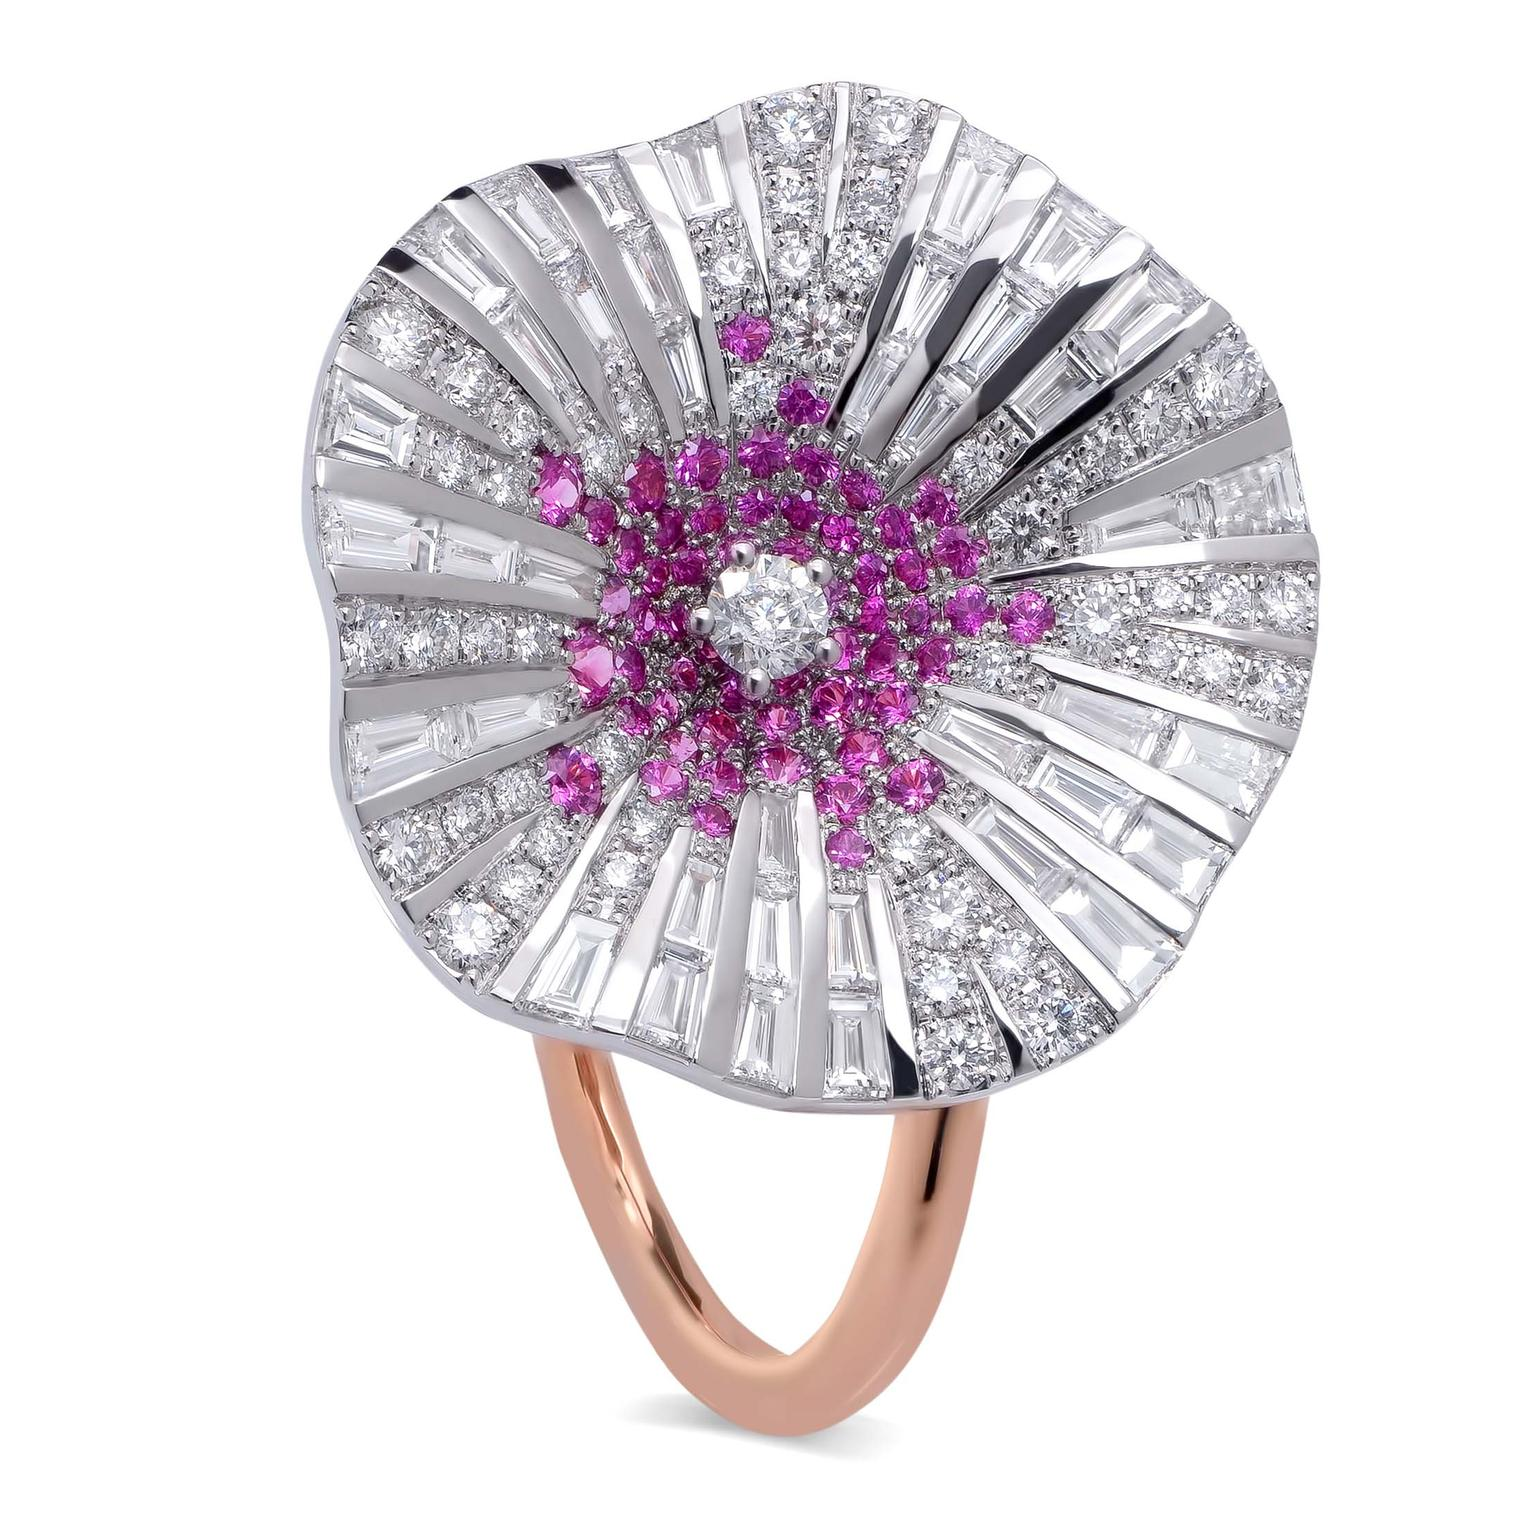 Stenzhorn Belle pink sapphire and white diamond ring